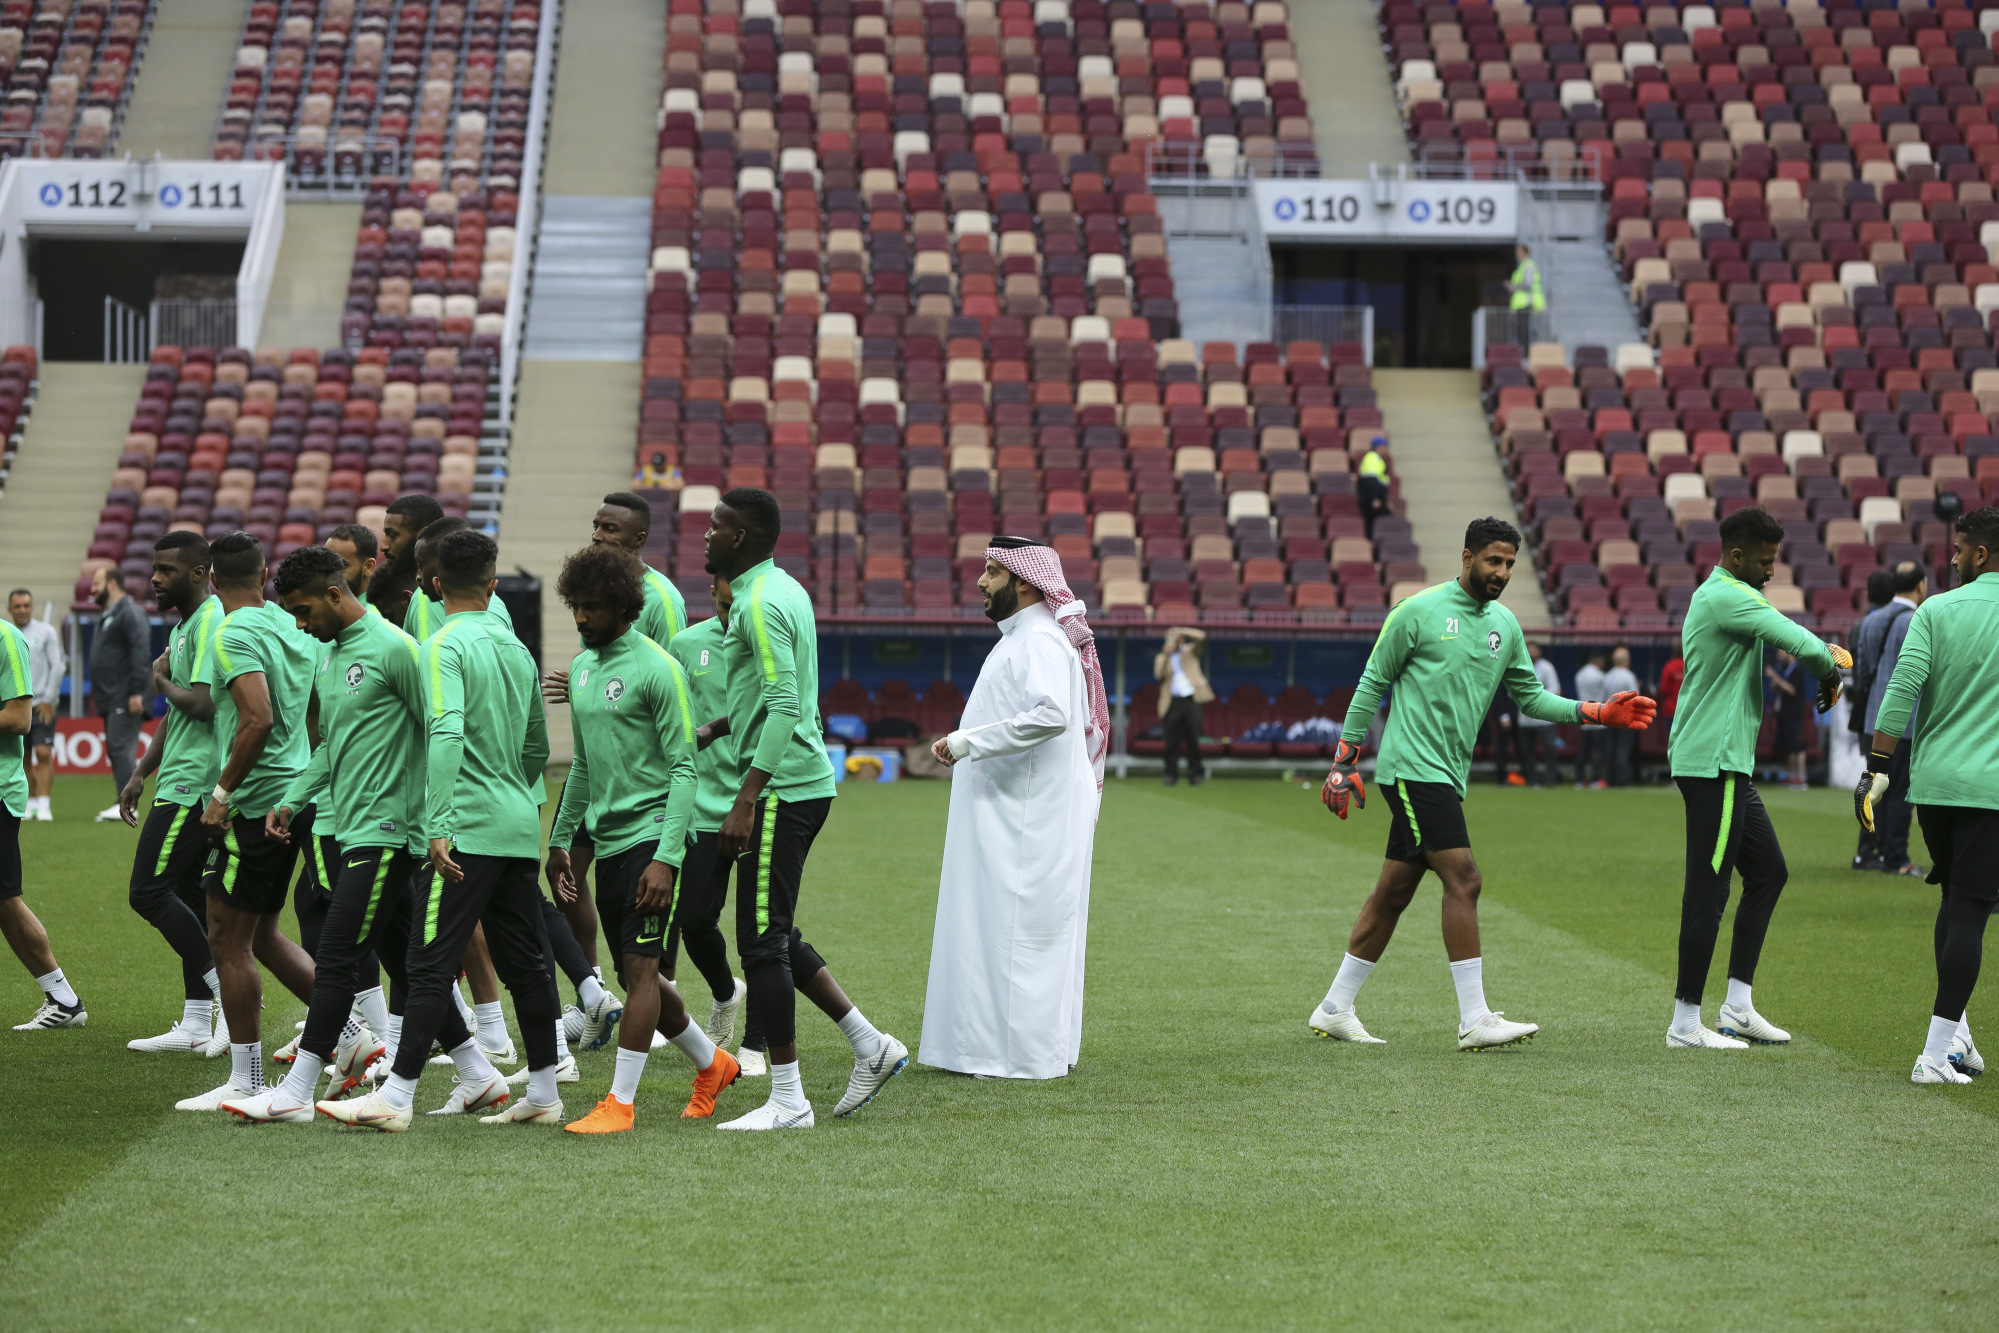 Turki Al Sheikh, Saudi Arabia's sports minister, center, joins the Saudi Arabia football team during a practice session ahead of the FIFA World Cup opening match at the Luzhniki stadium in Moscow, Russia, on Wednesday, June 13, 2018.  Photographer: Andrey Rudakov/Bloomberg